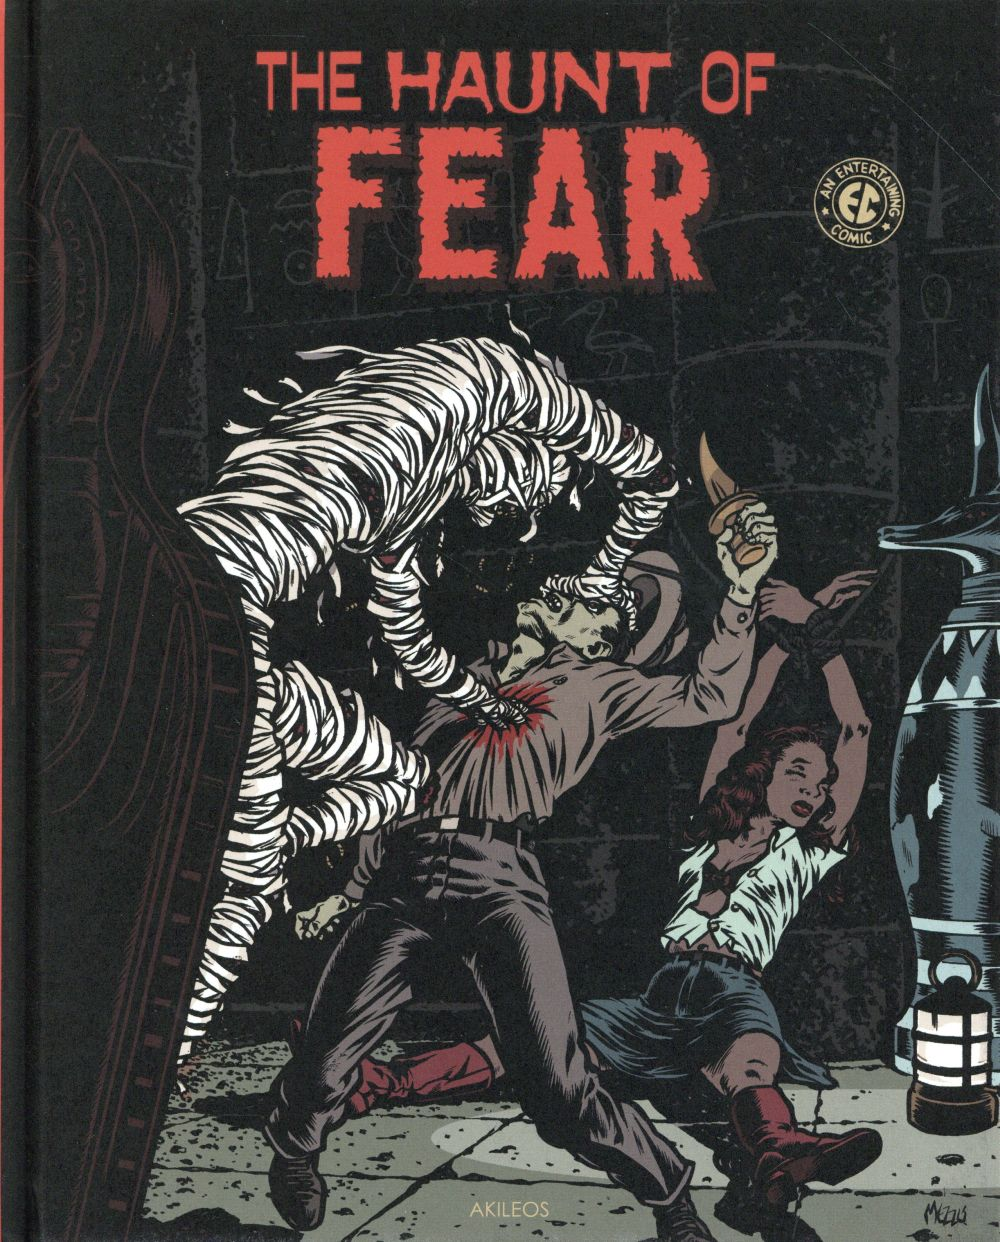 THE HAUNT OF FEAR - TOME 1